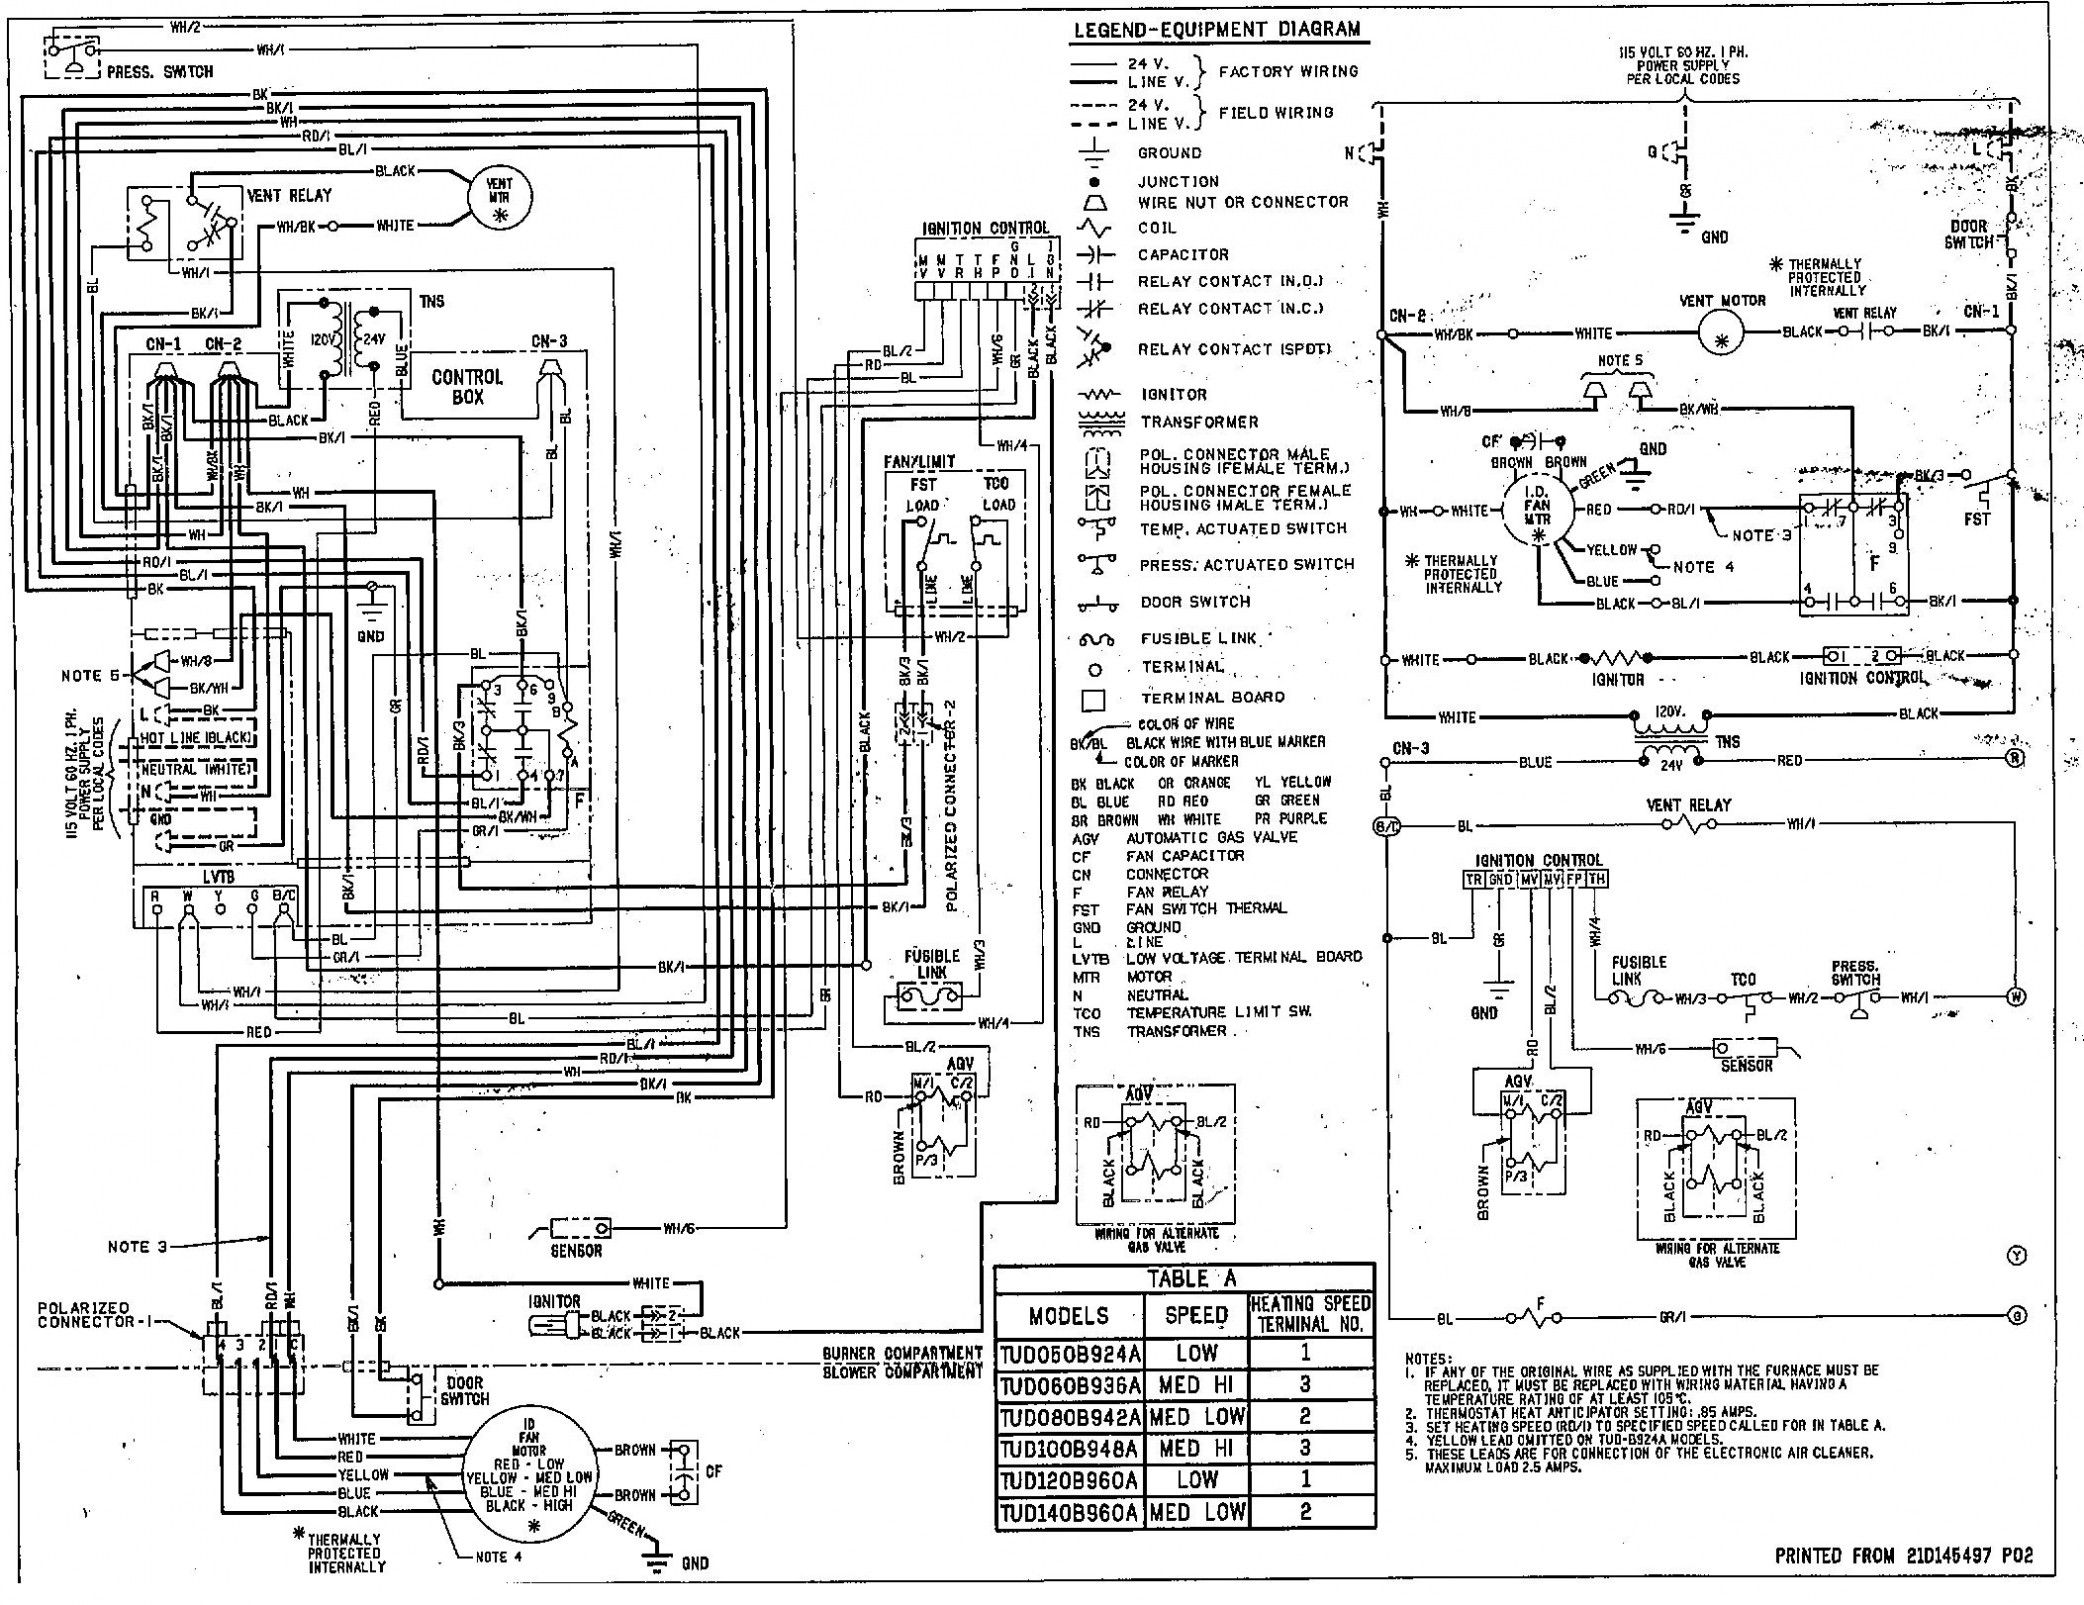 New Wiring Codes Diagram Wiringdiagram Diagramming Diagramm Visuals Visualisation Graphical Check More At Htt Thermostat Wiring Electric Furnace Furnace